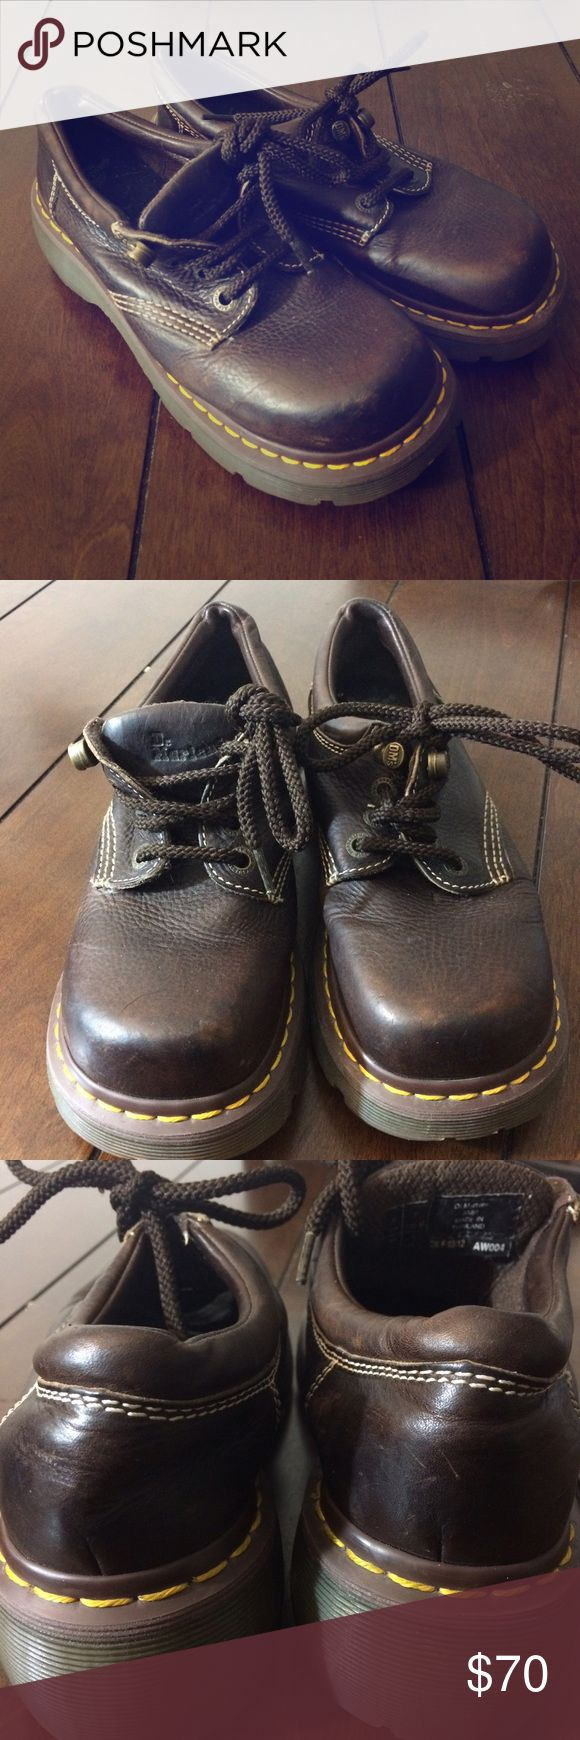 Doc Marten shoes Woman's size 8 brown dr. Marten shoes. Some light scuffing/wear. No structural damage. Dr. Martens Shoes Ankle Boots & Booties